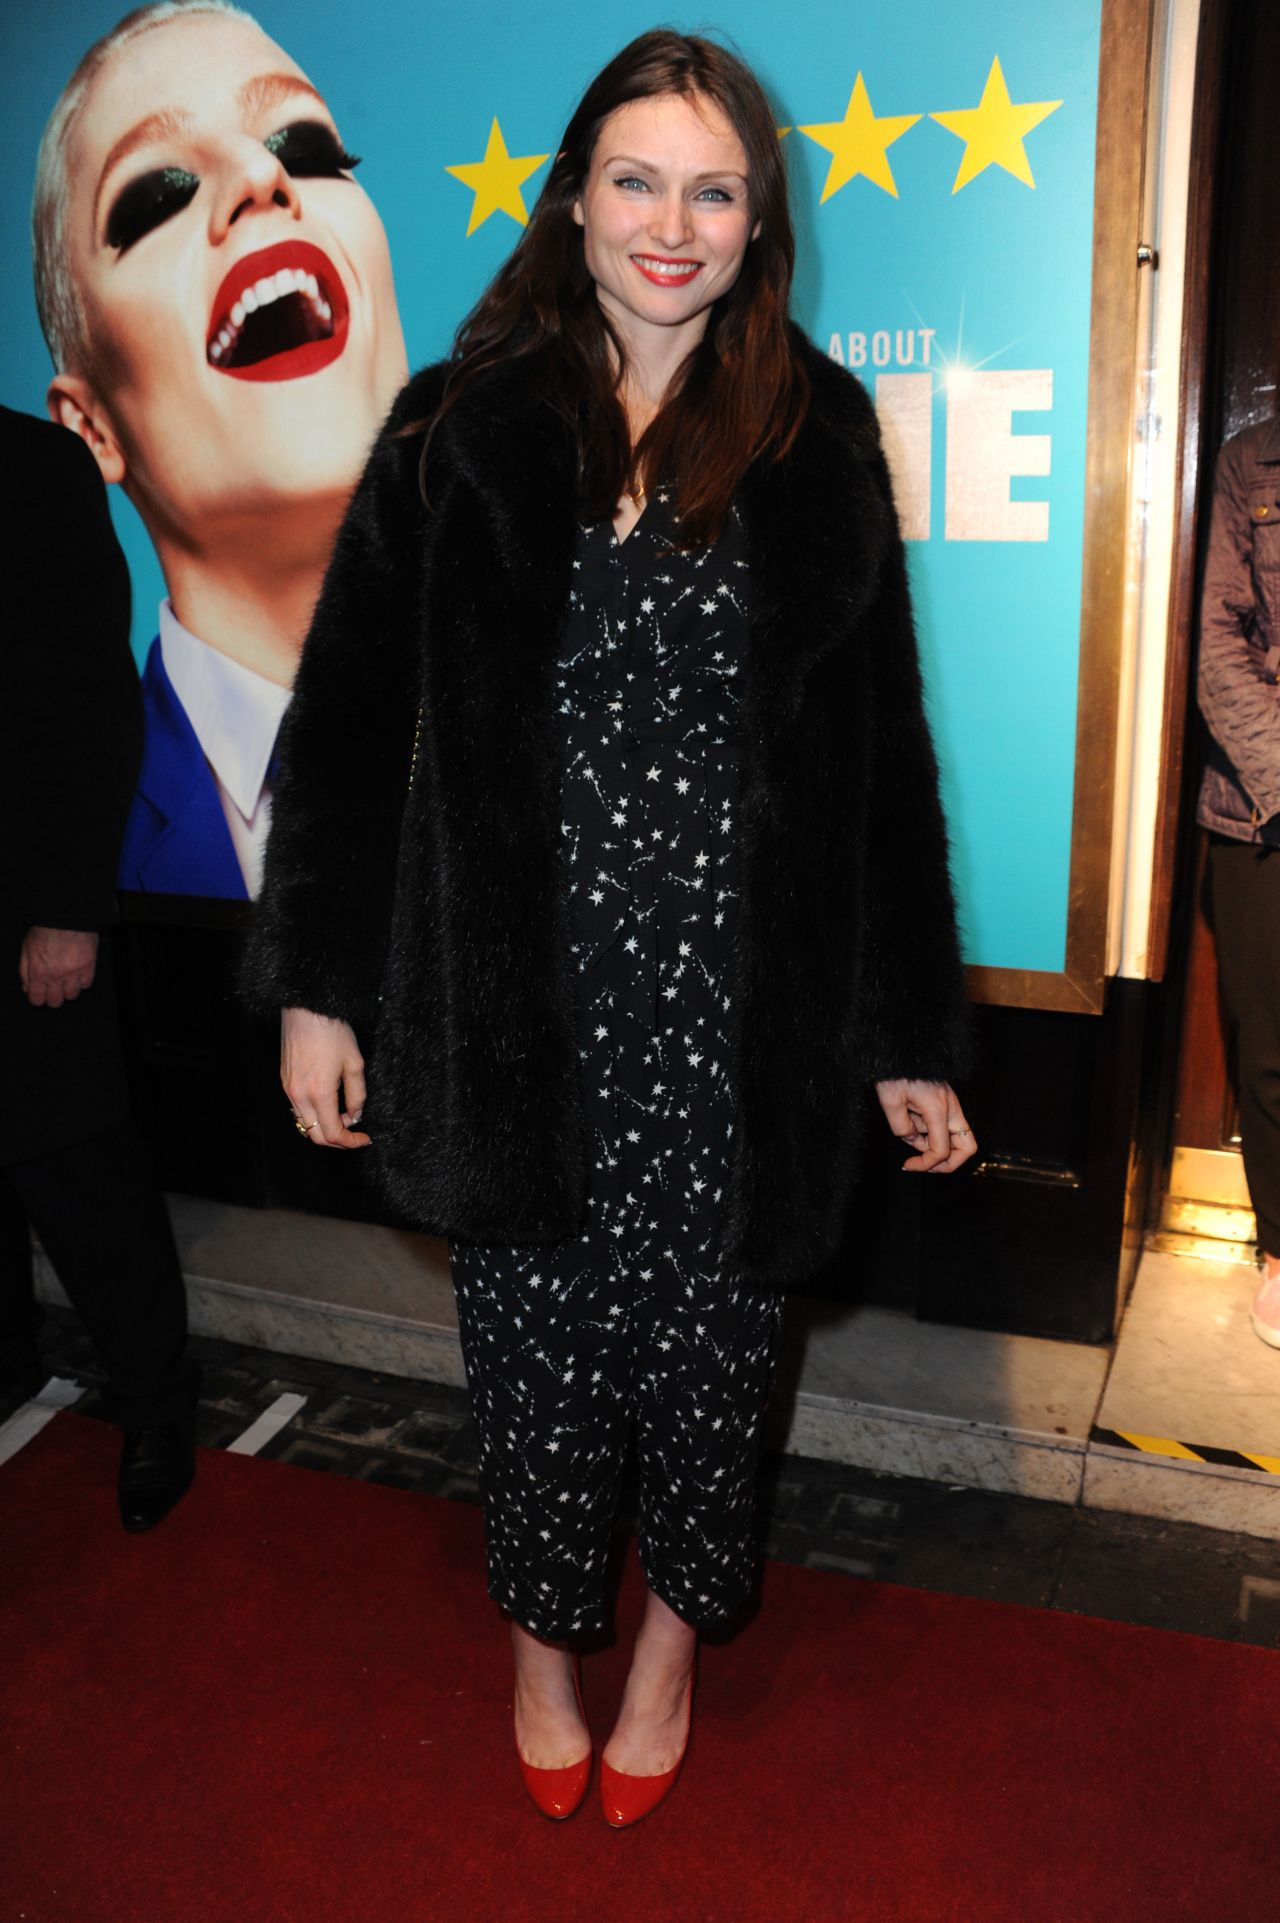 http://celebmafia.com/wp-content/uploads/2017/11/sophie-ellis-bextor-everybody-s-talking-about-jamie-press-night-in-london-11-22-2017-6.jpg